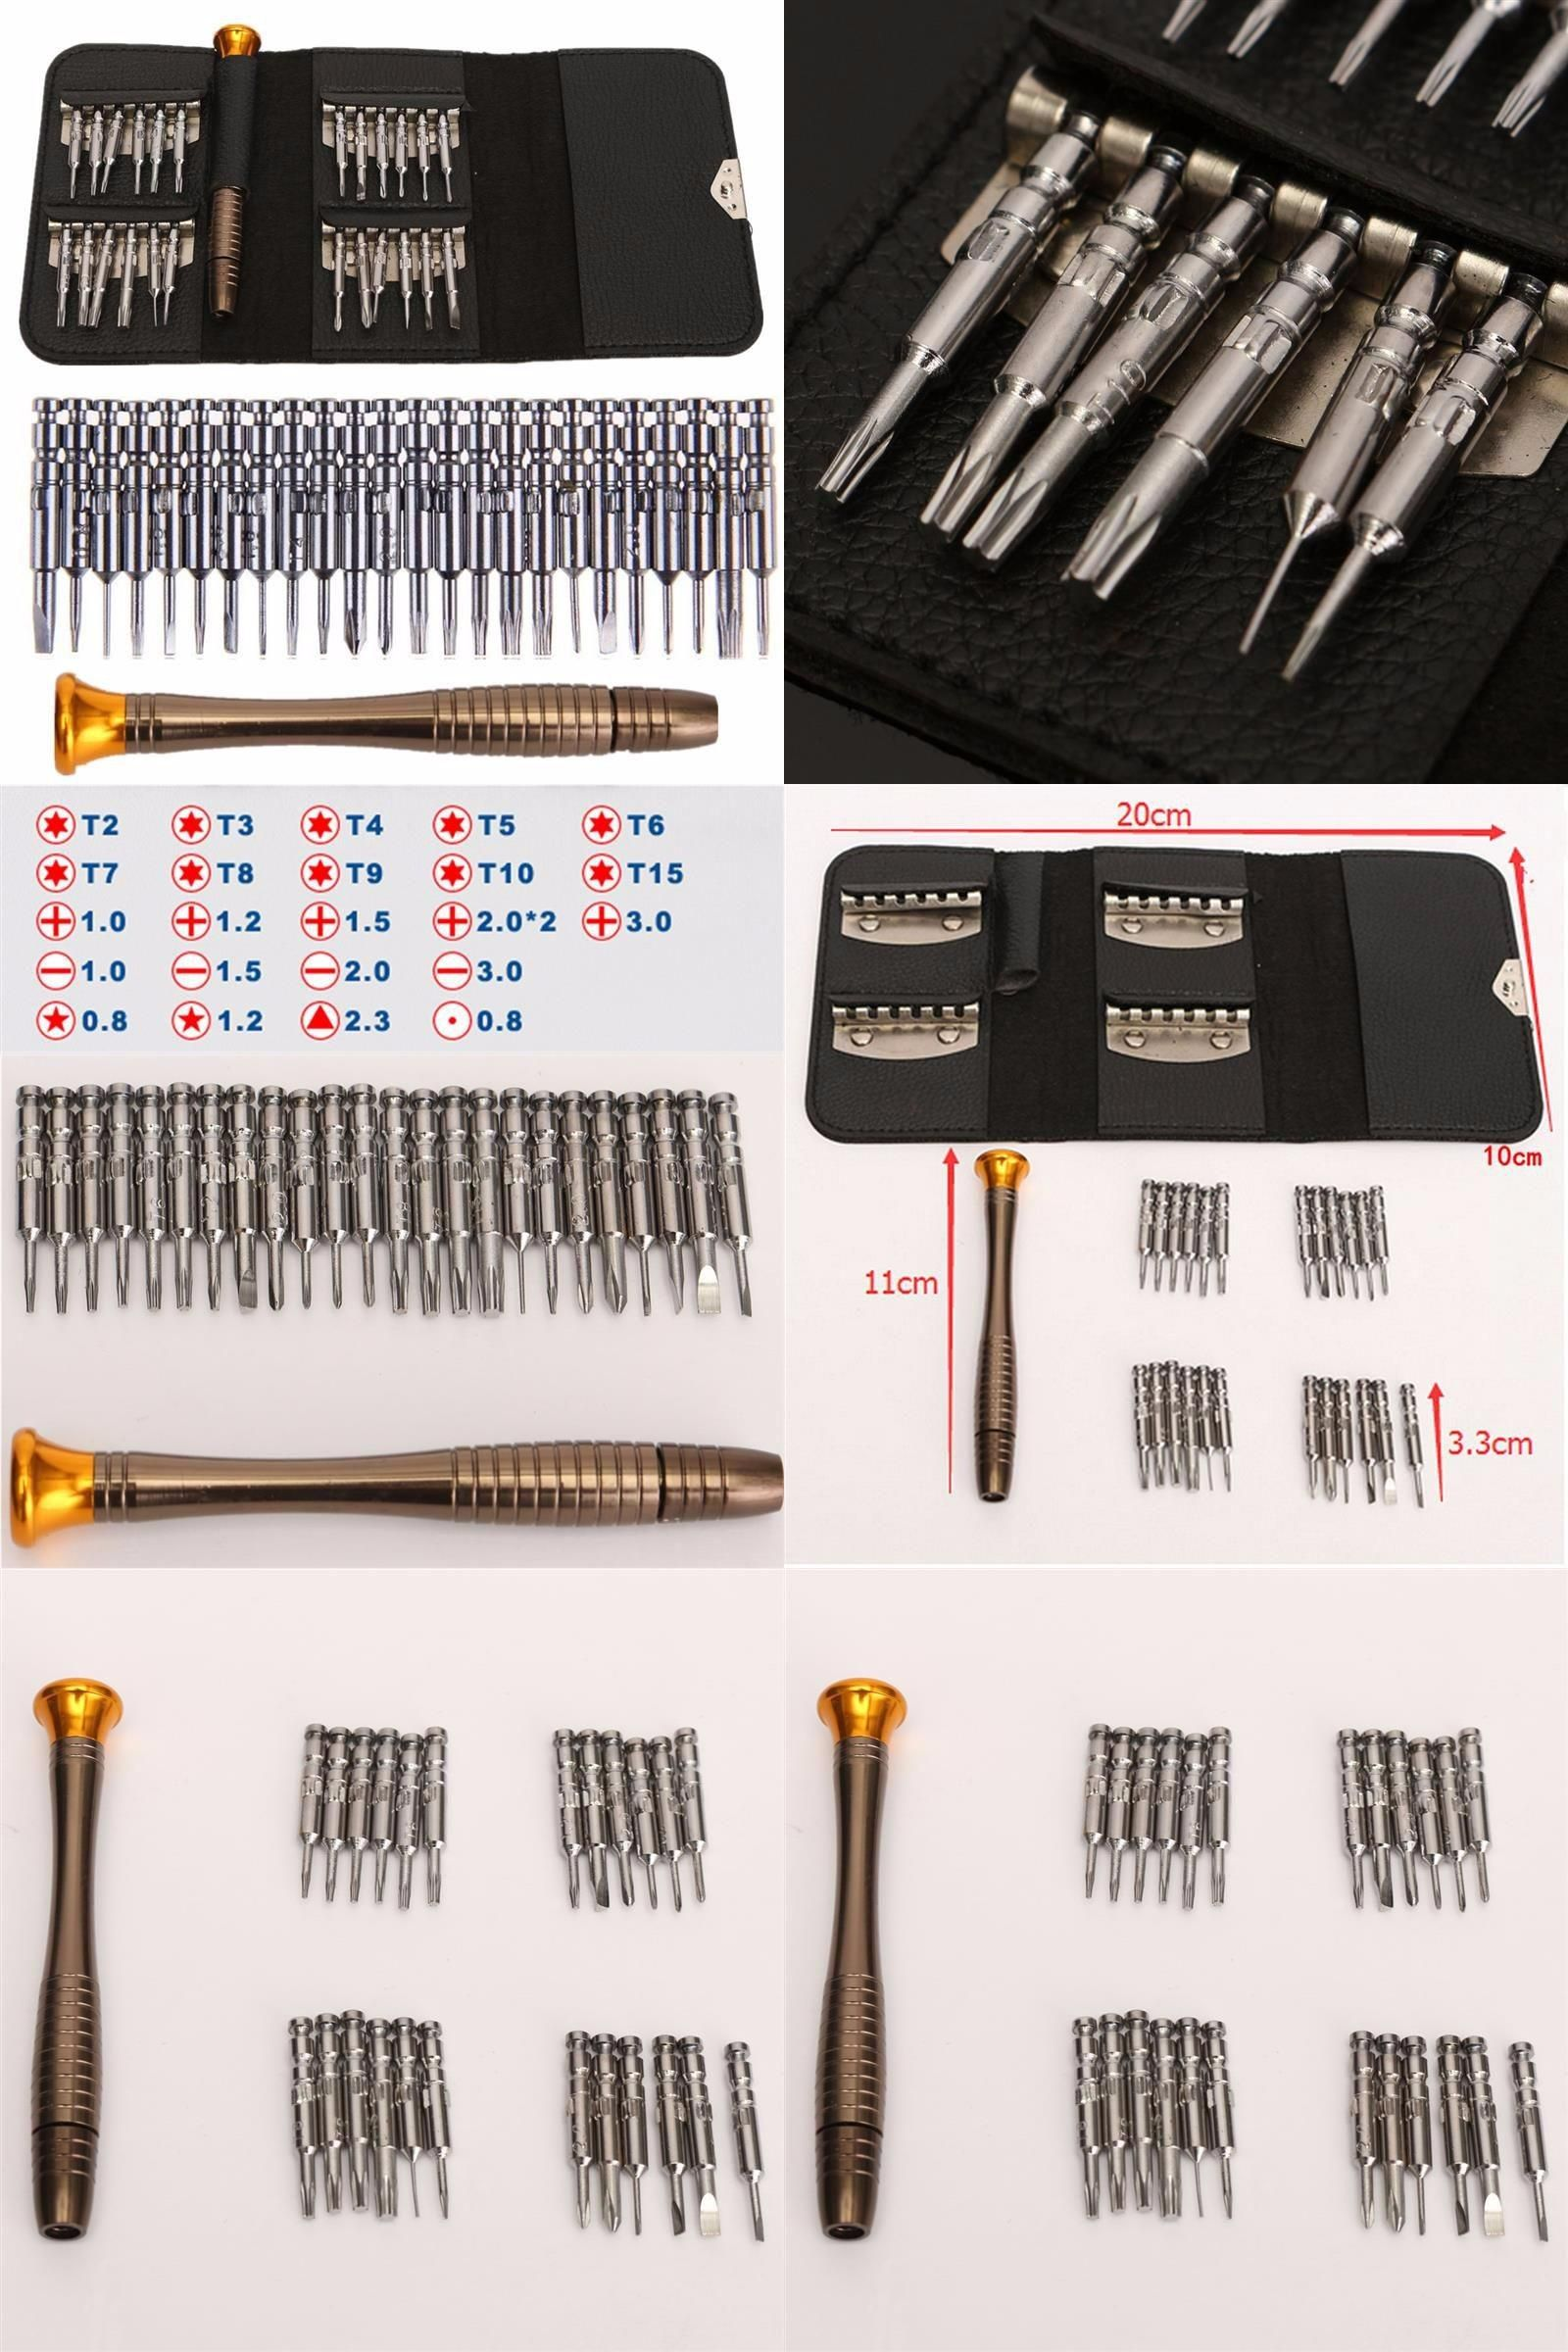 25 in 1 Precision Torx Screwdriver for Phone Laptop Cellphone